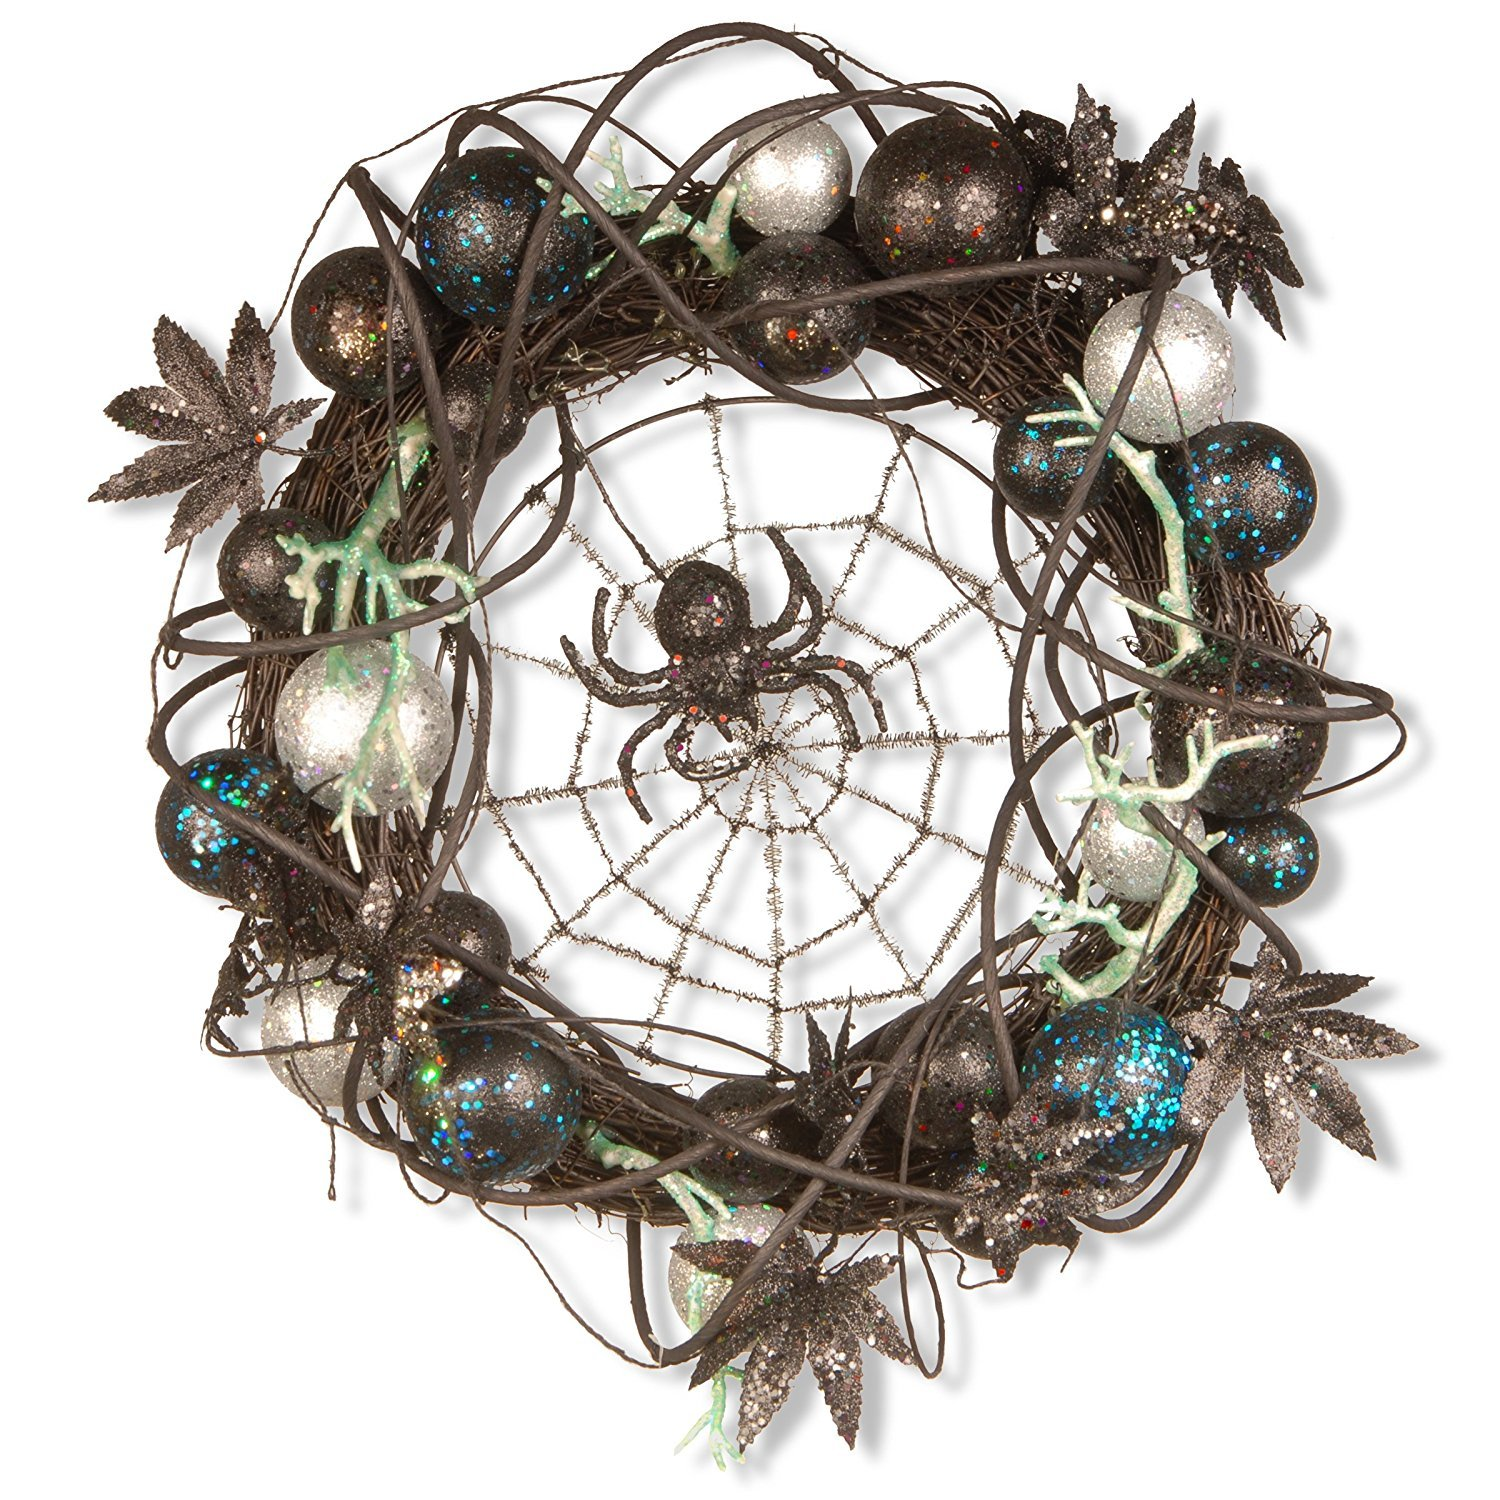 National Tree 18 Inch Halloween Wreath with Black Spider and Ornaments (RAH-W030212)【クリスマス】【ツリー】 [並行輸入品] B077QGHVXS